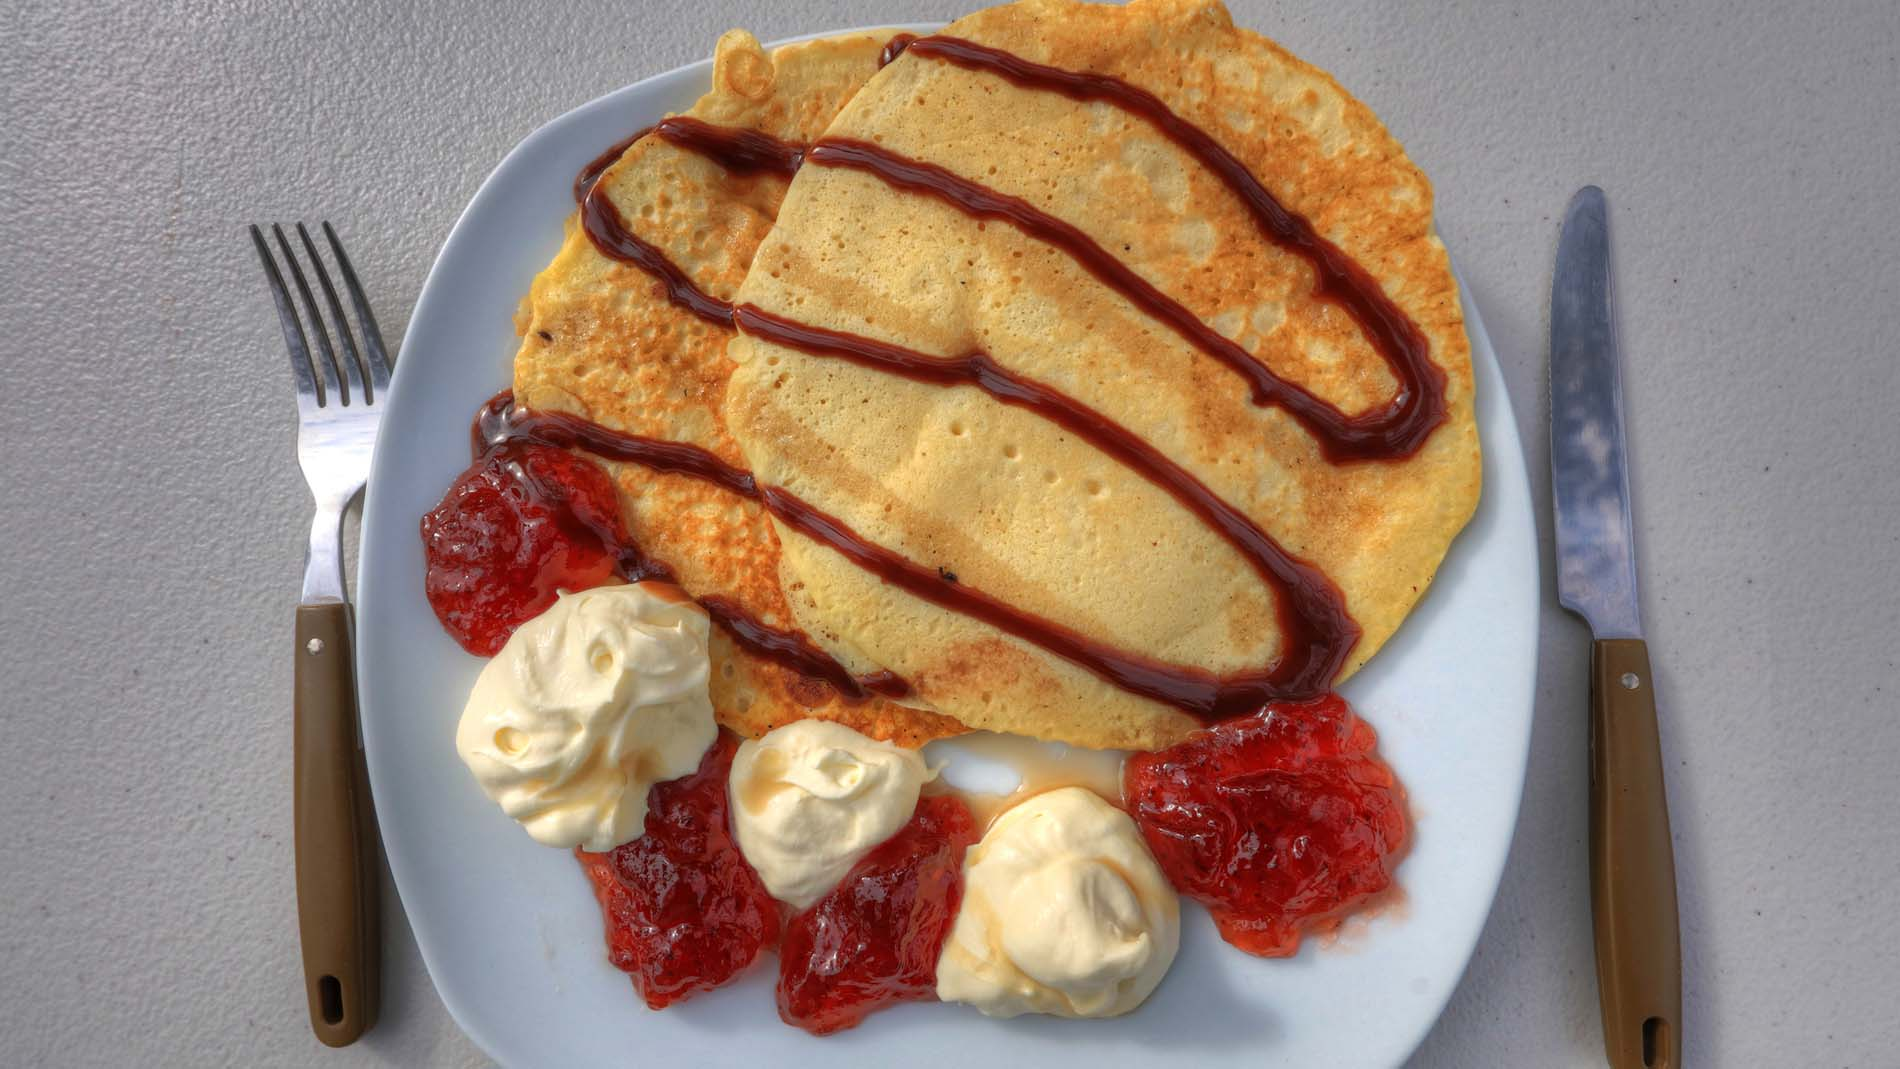 Pancakes, strawberry and cream on a plate